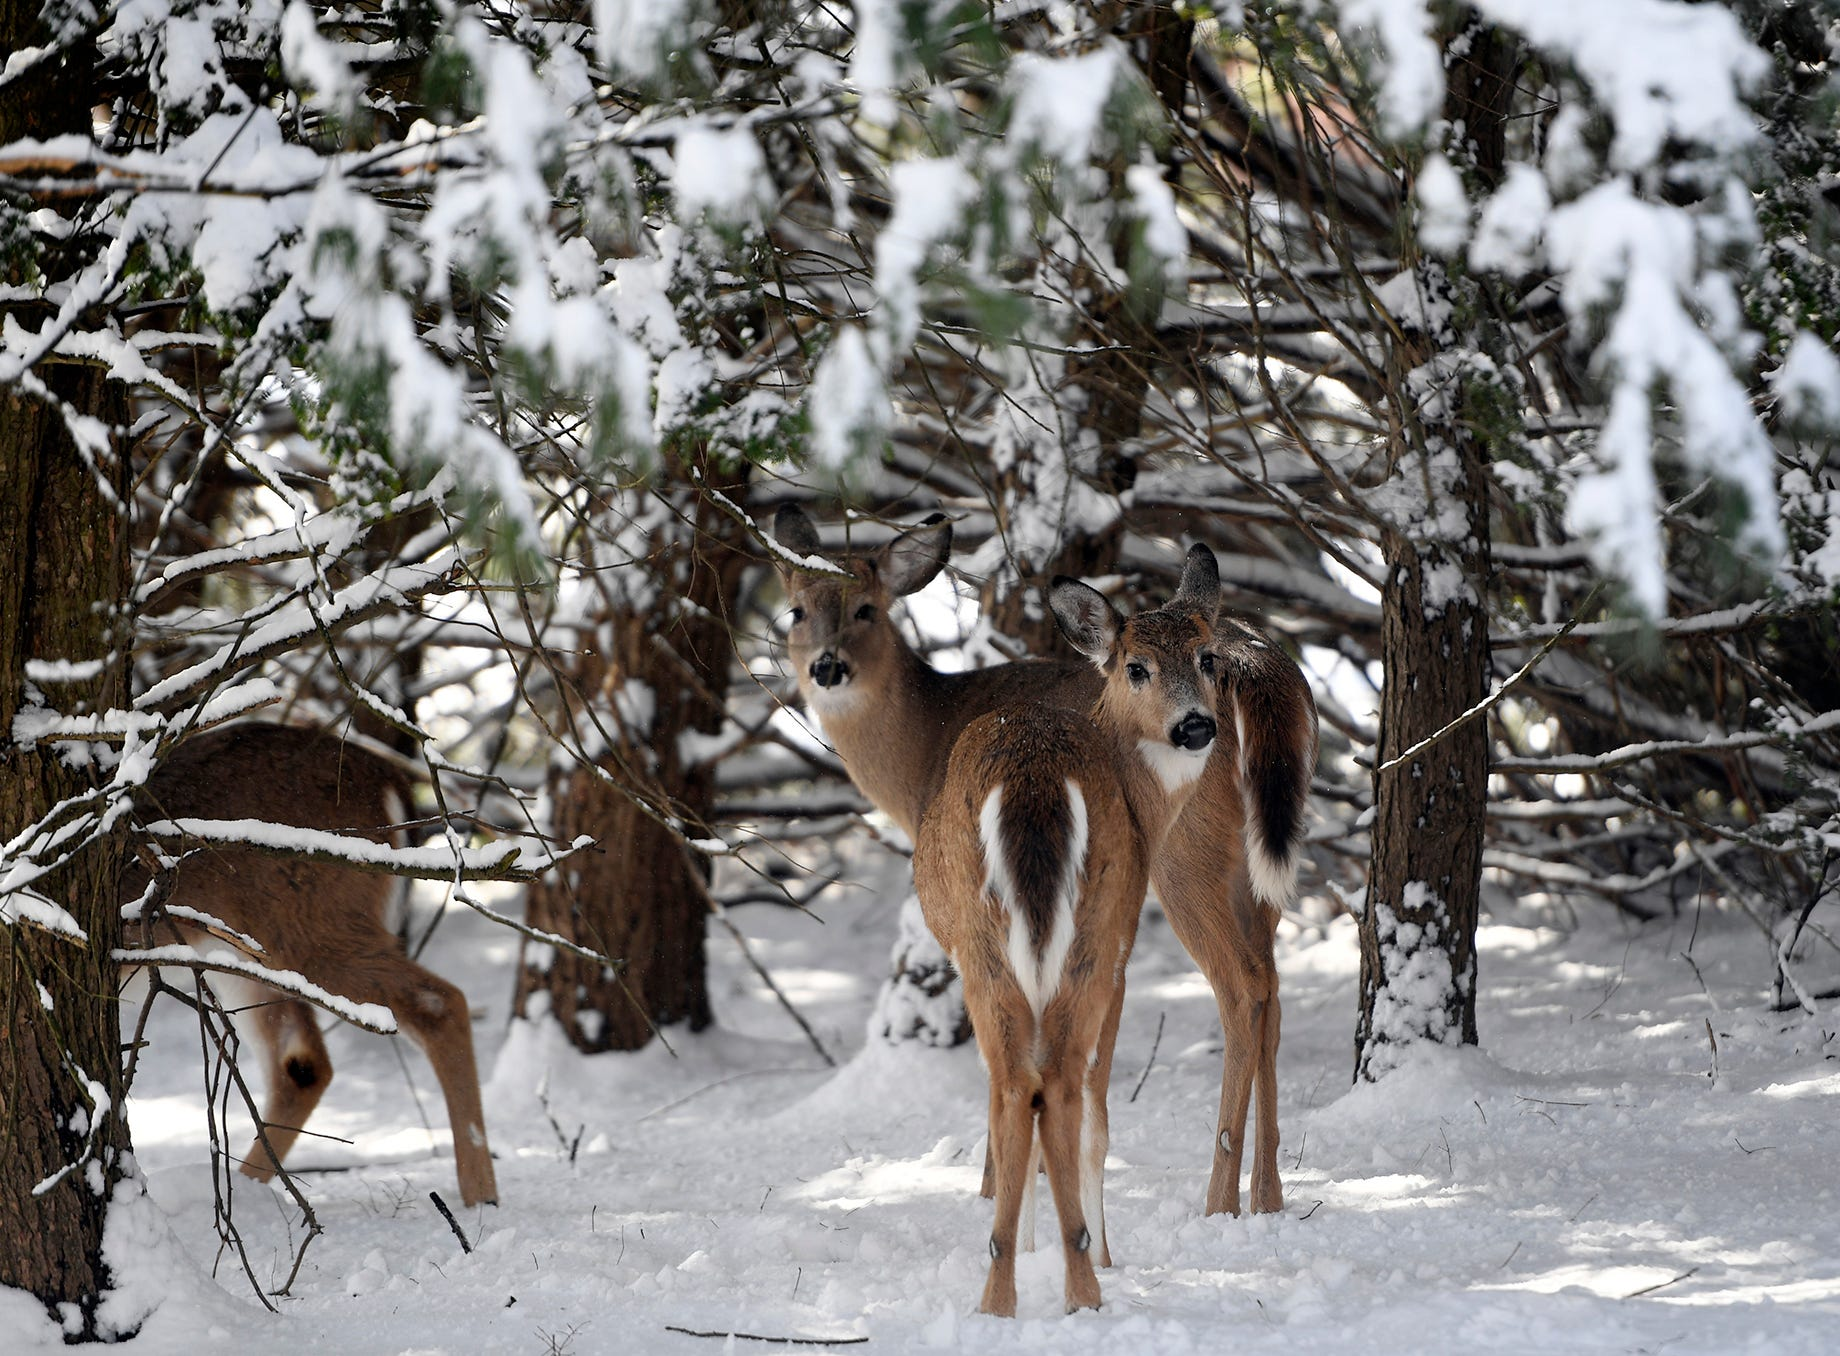 Deer under snowy trees the morning after the storm on Monday, Feb. 4, 2019, in River Vale.